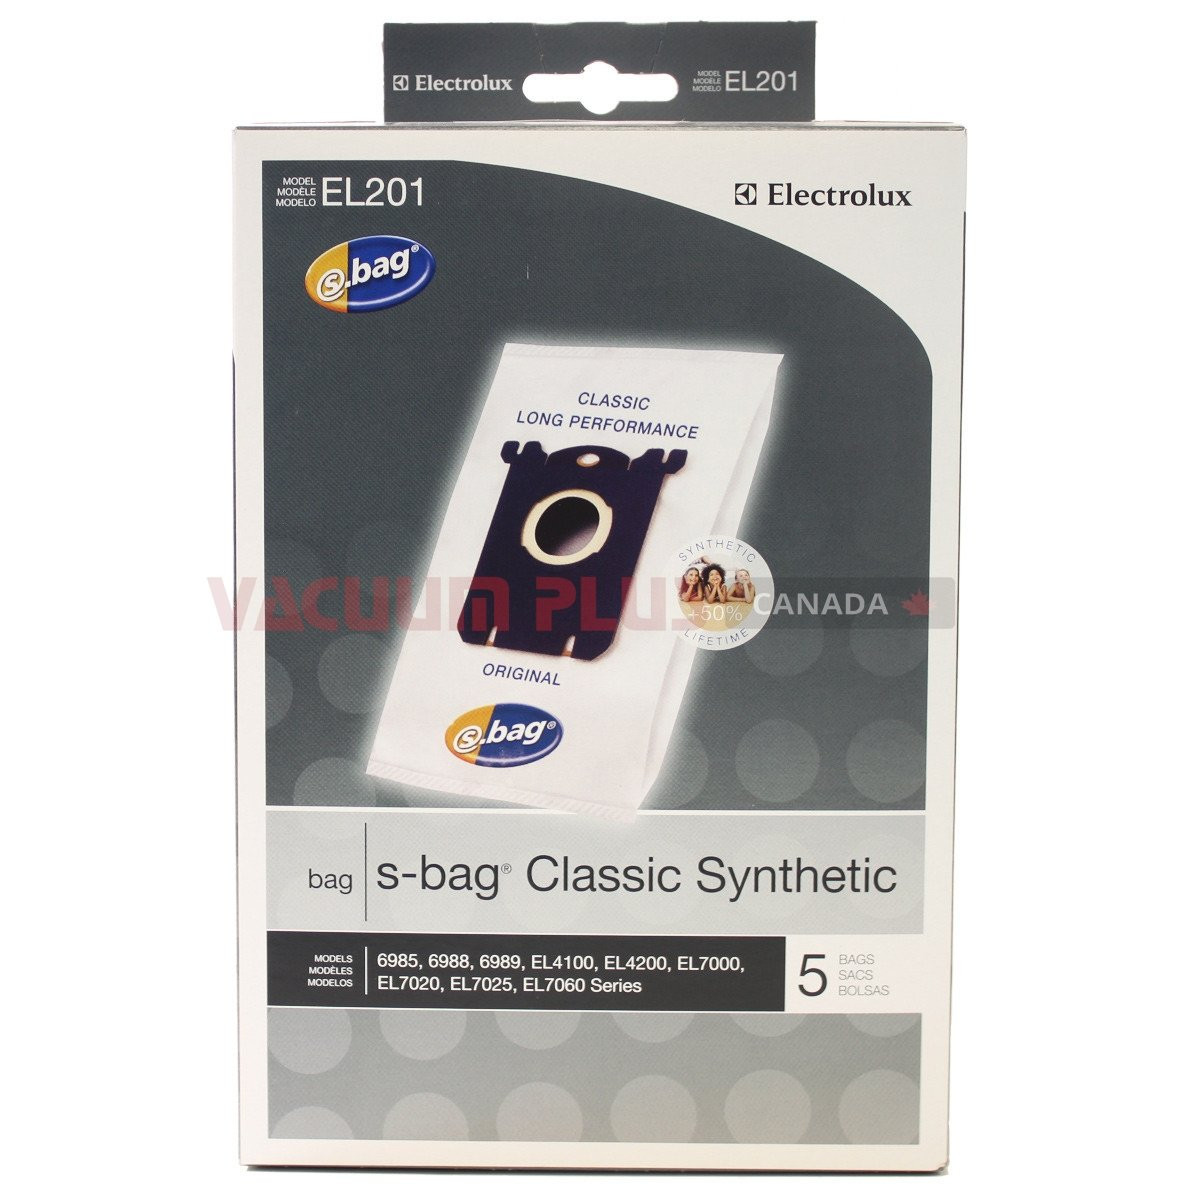 electrolux hardwood floor vacuum of buy products at vacuum plus canada vacuum plus canada regarding buy electrolux s bag classic synthetic bags 5pk vacuum plus canada